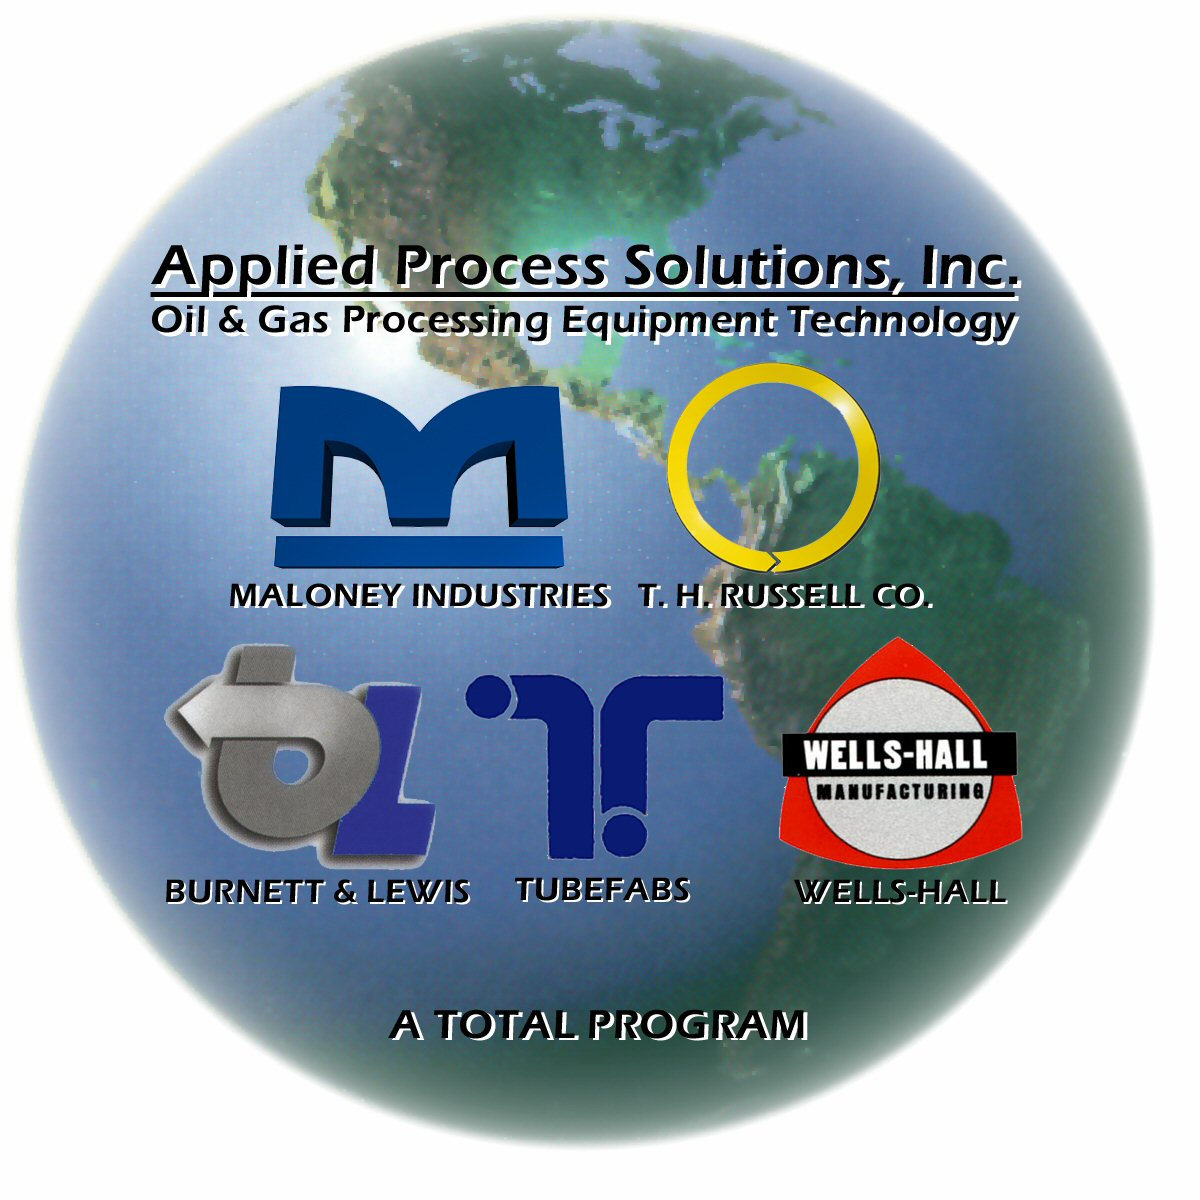 Applied Process Solutions